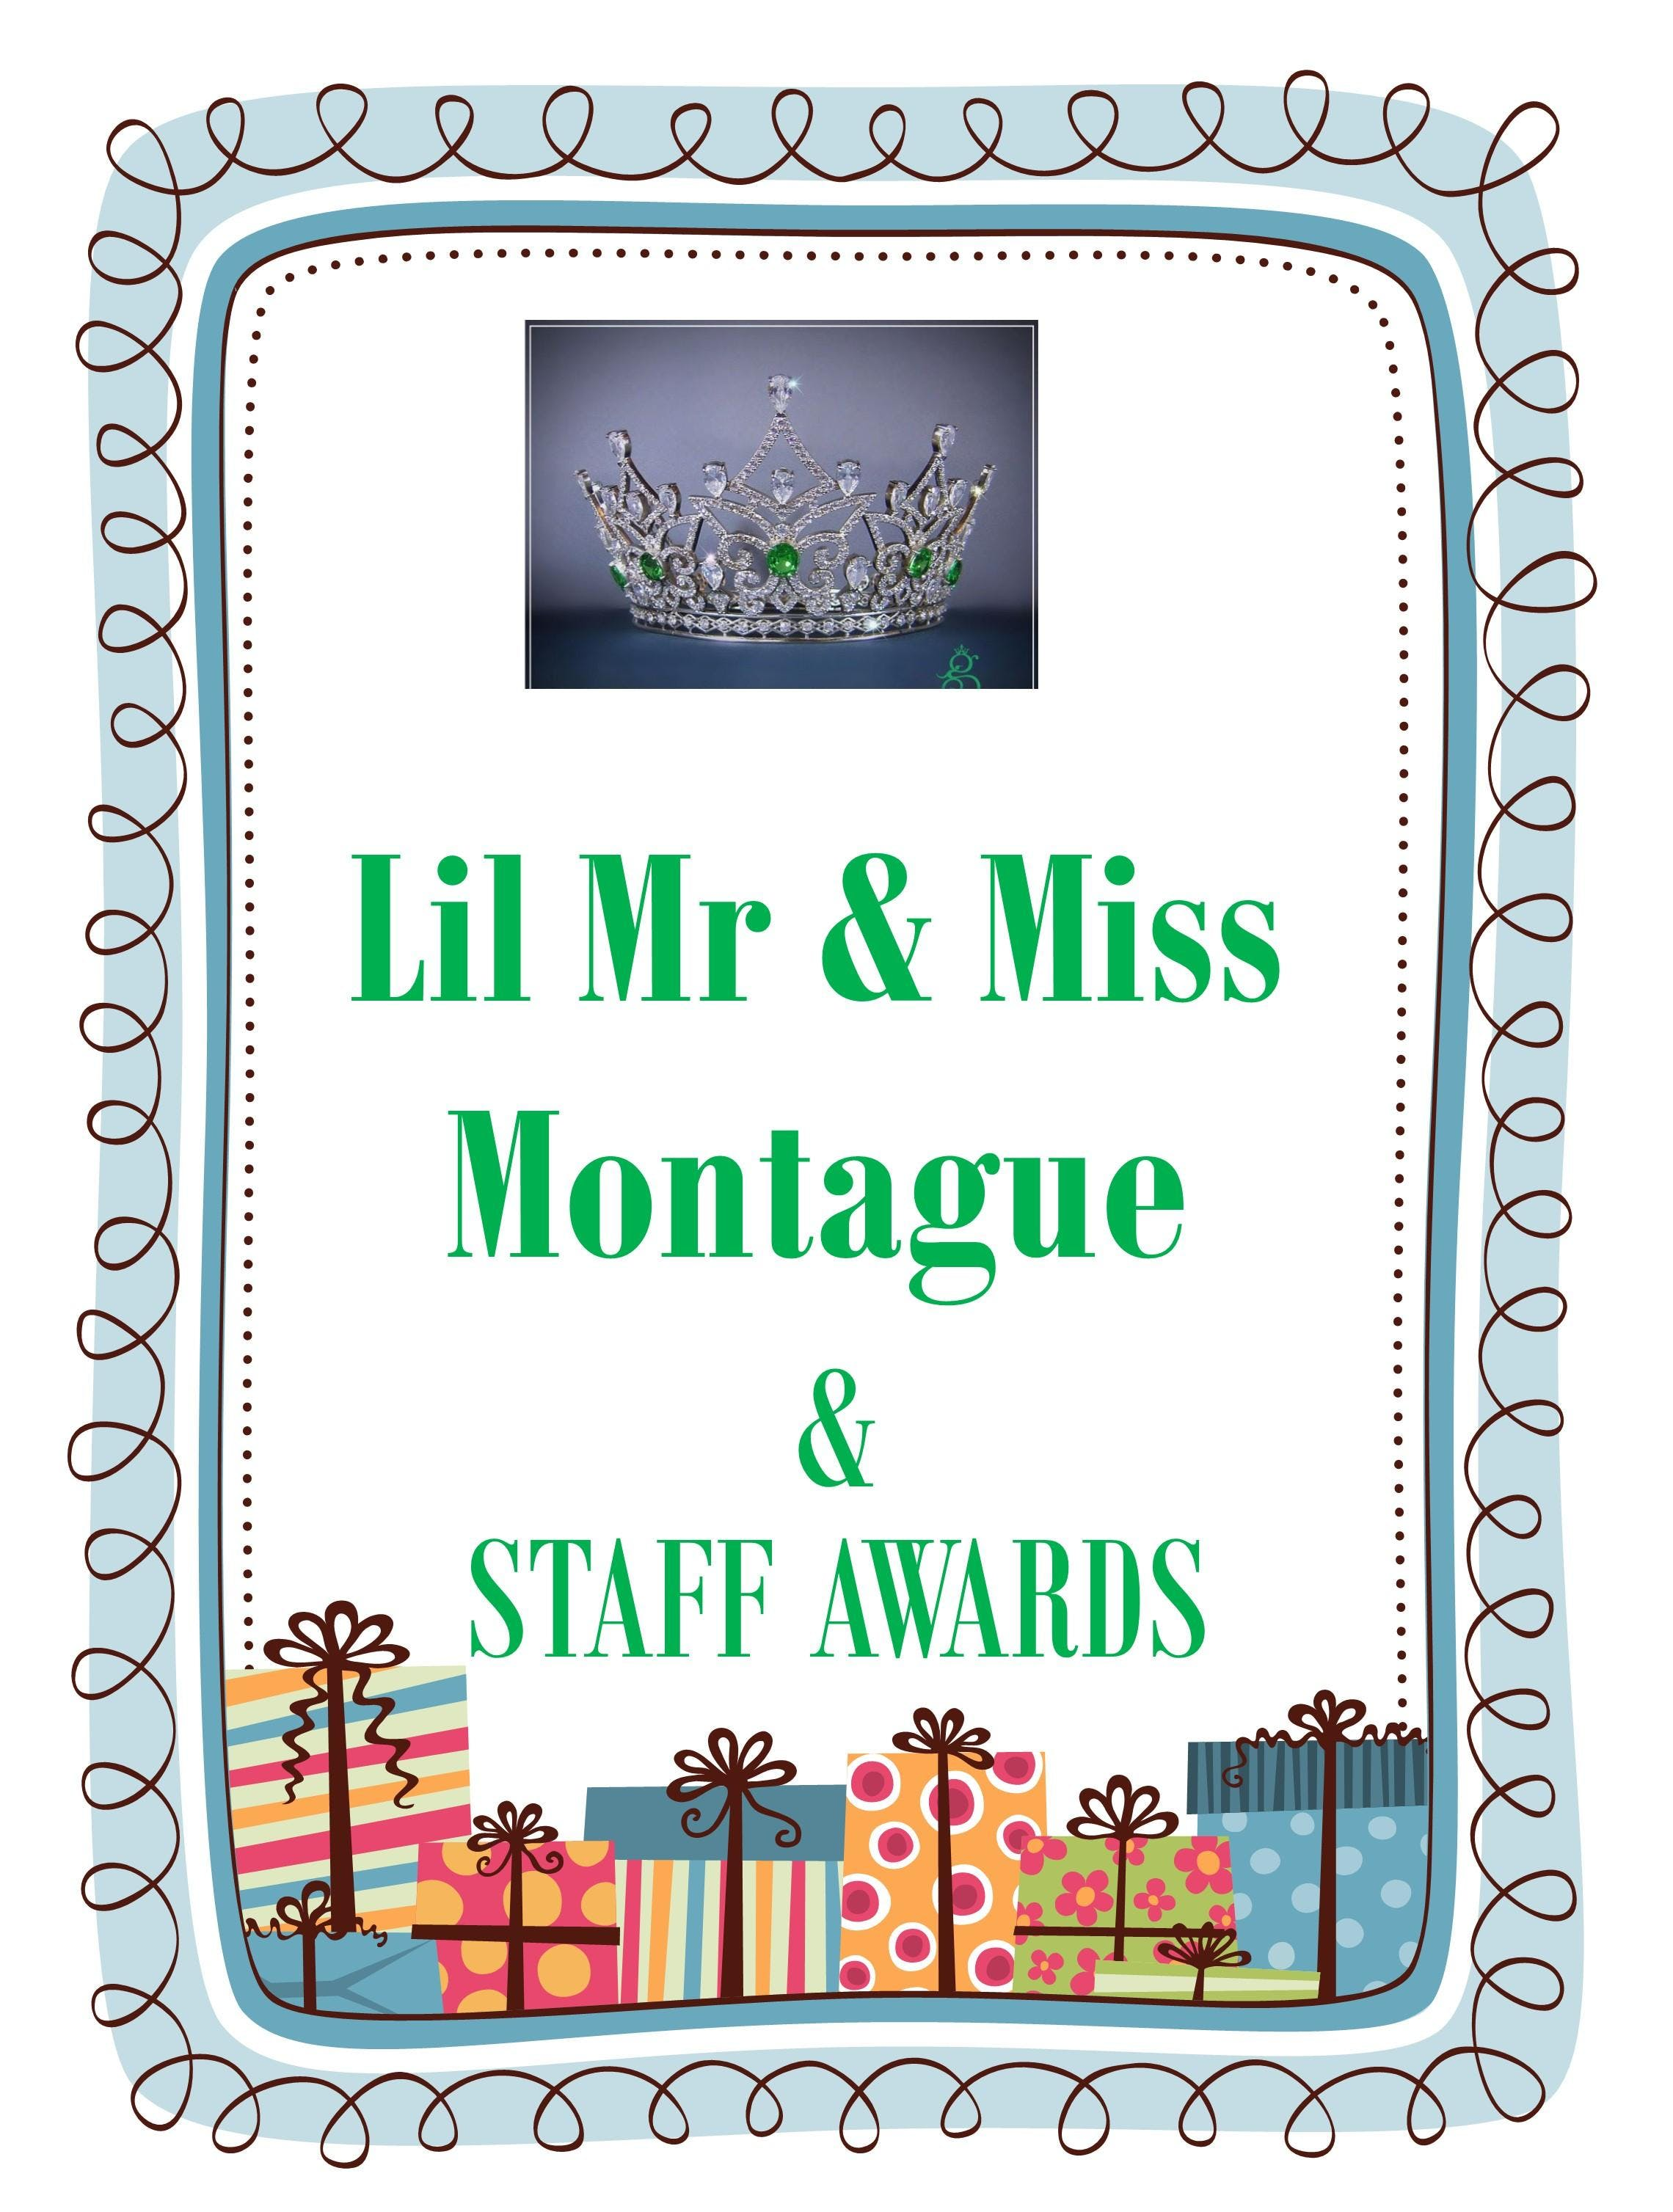 Lil Mr & Miss Montague  & Staff Awards